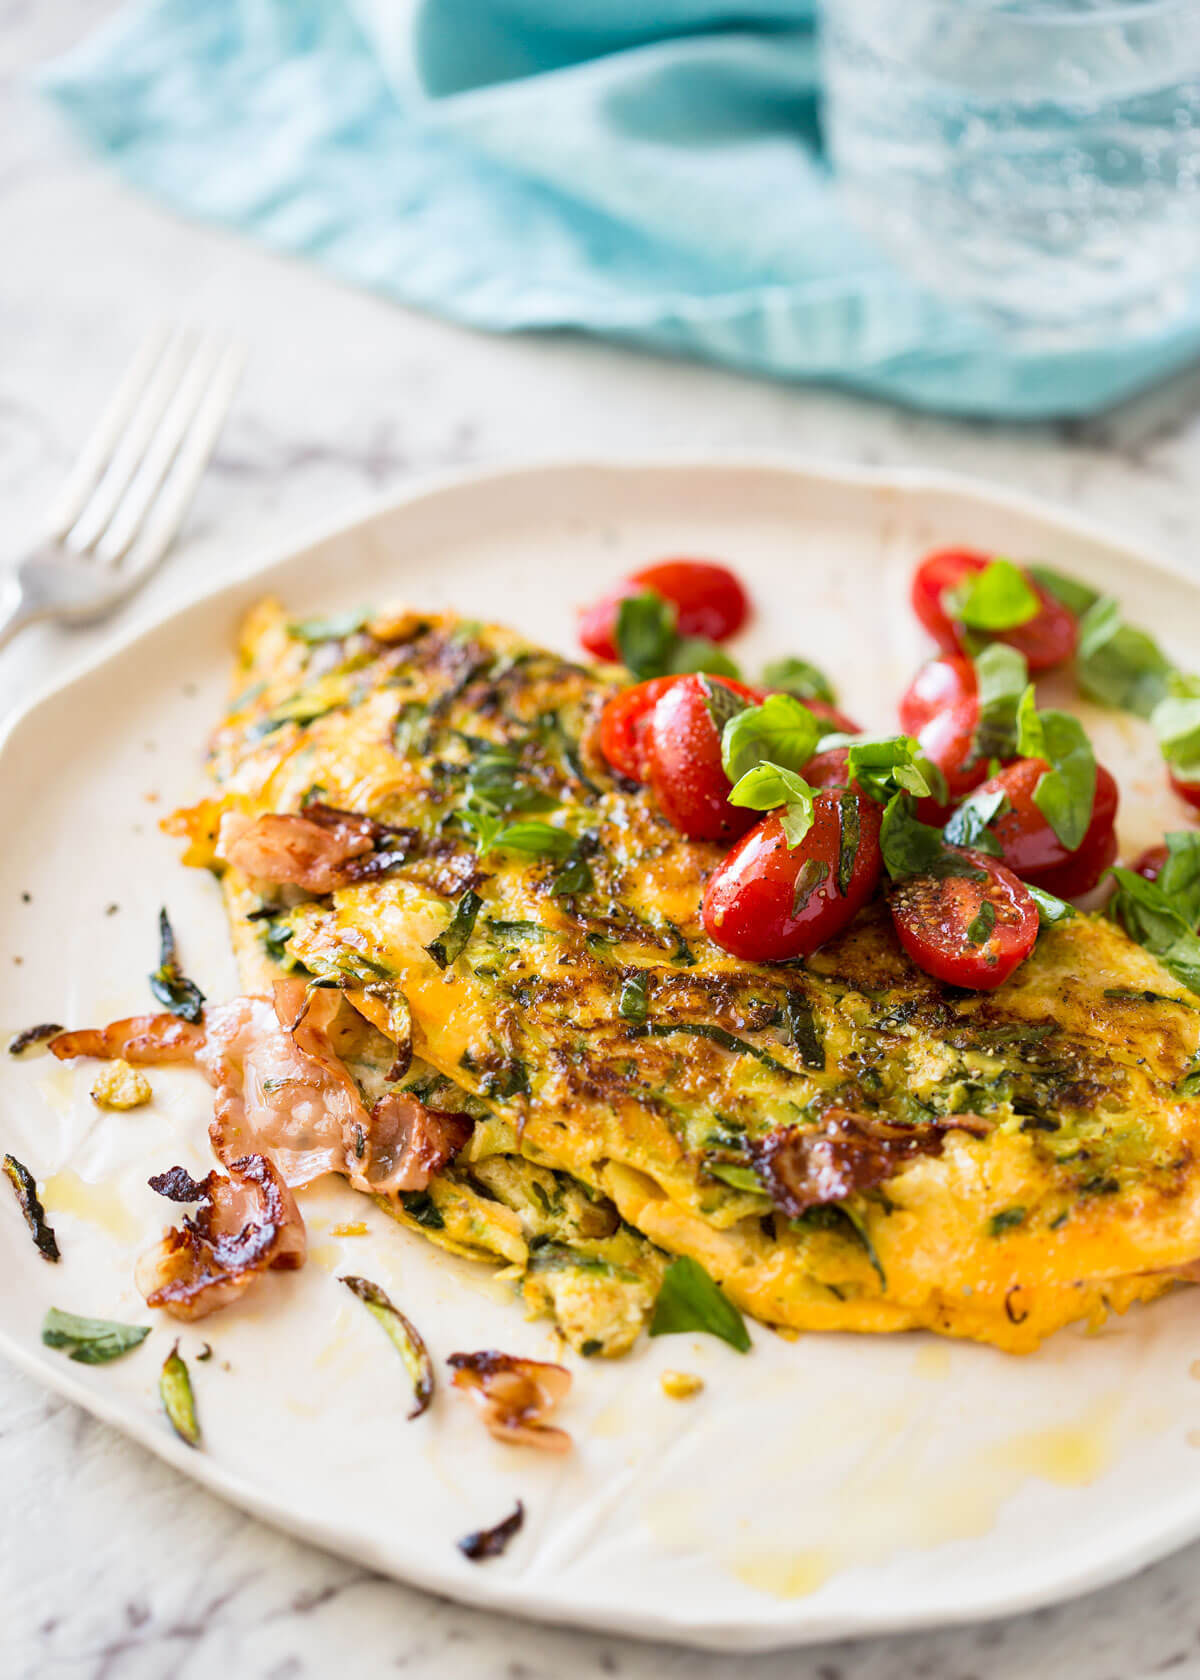 Ultra Lazy Zucchini Ham Cheese Omelette | RecipeTin Eats